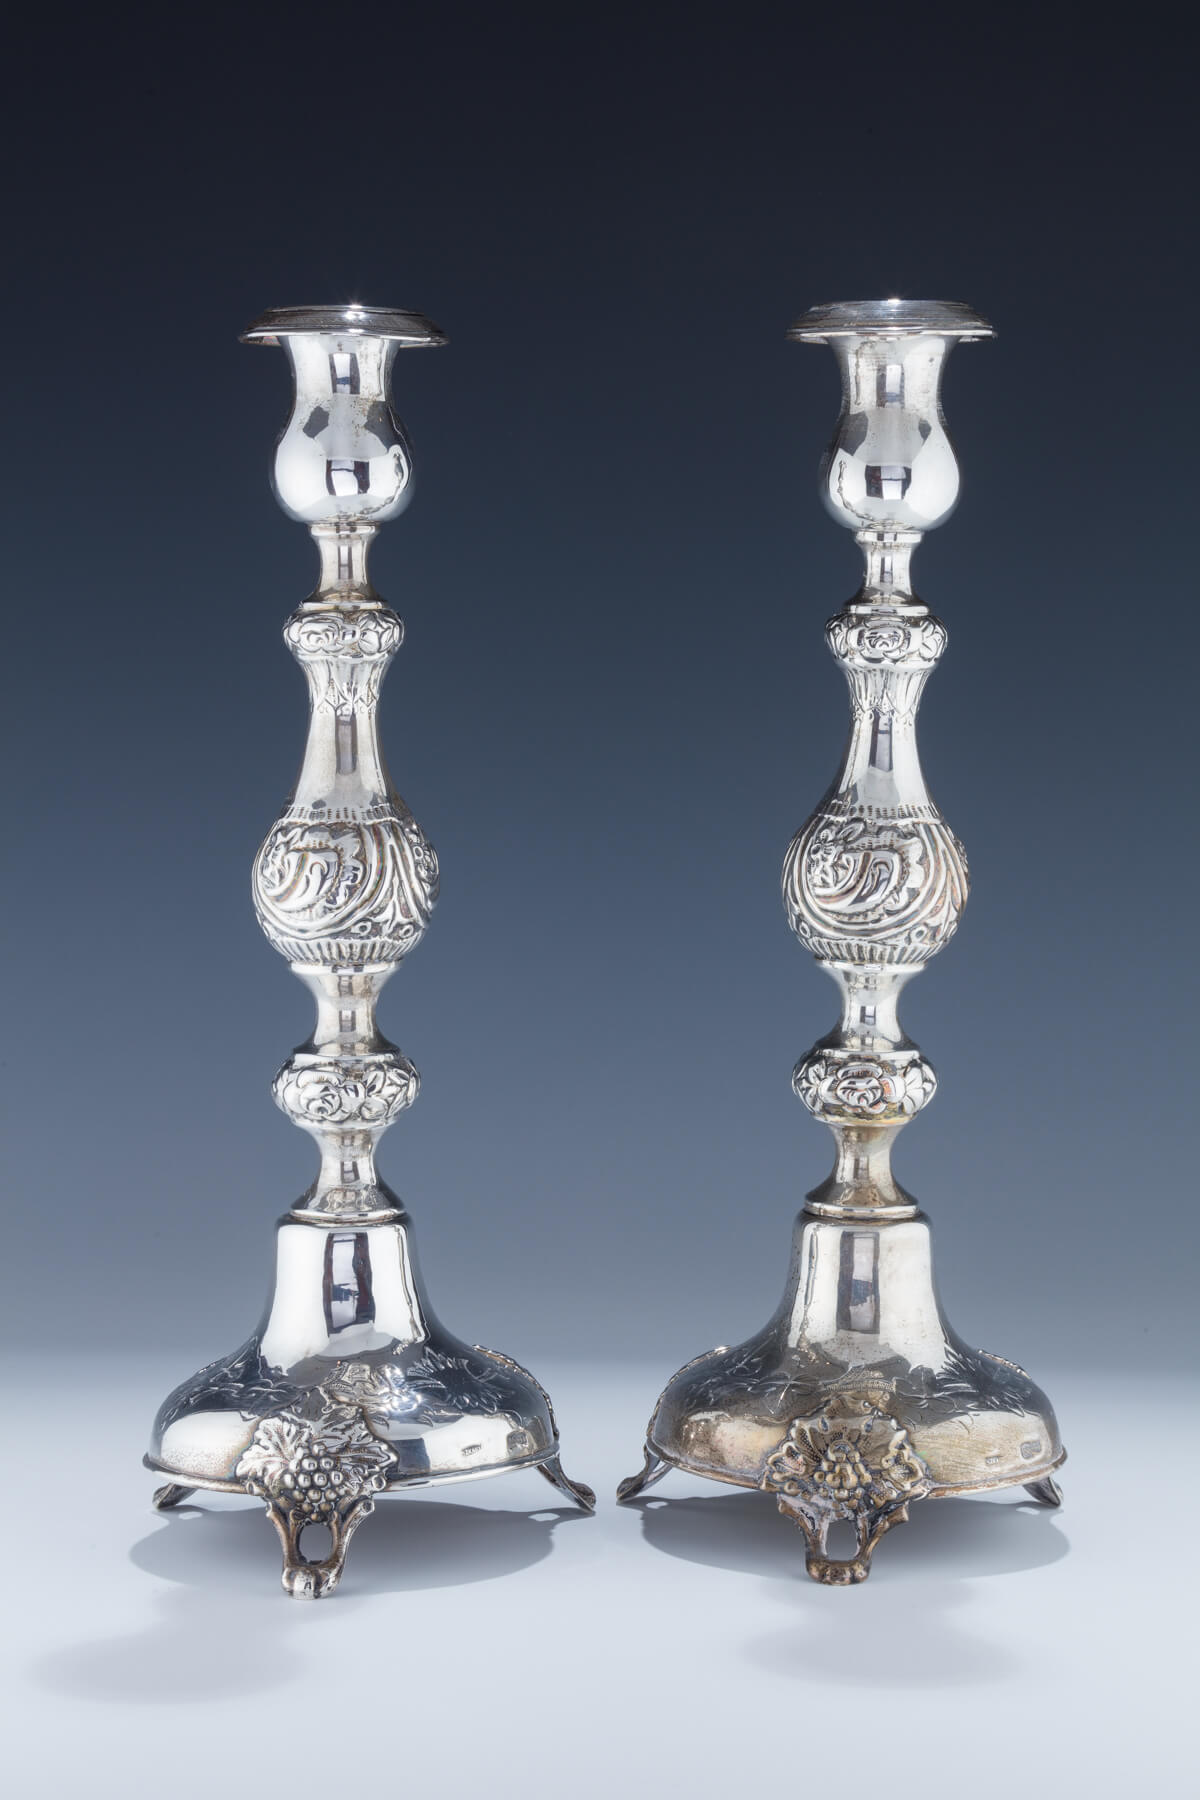 091. A Pair of Silver Sabbath Candlesticks by Shmuel Skarlat